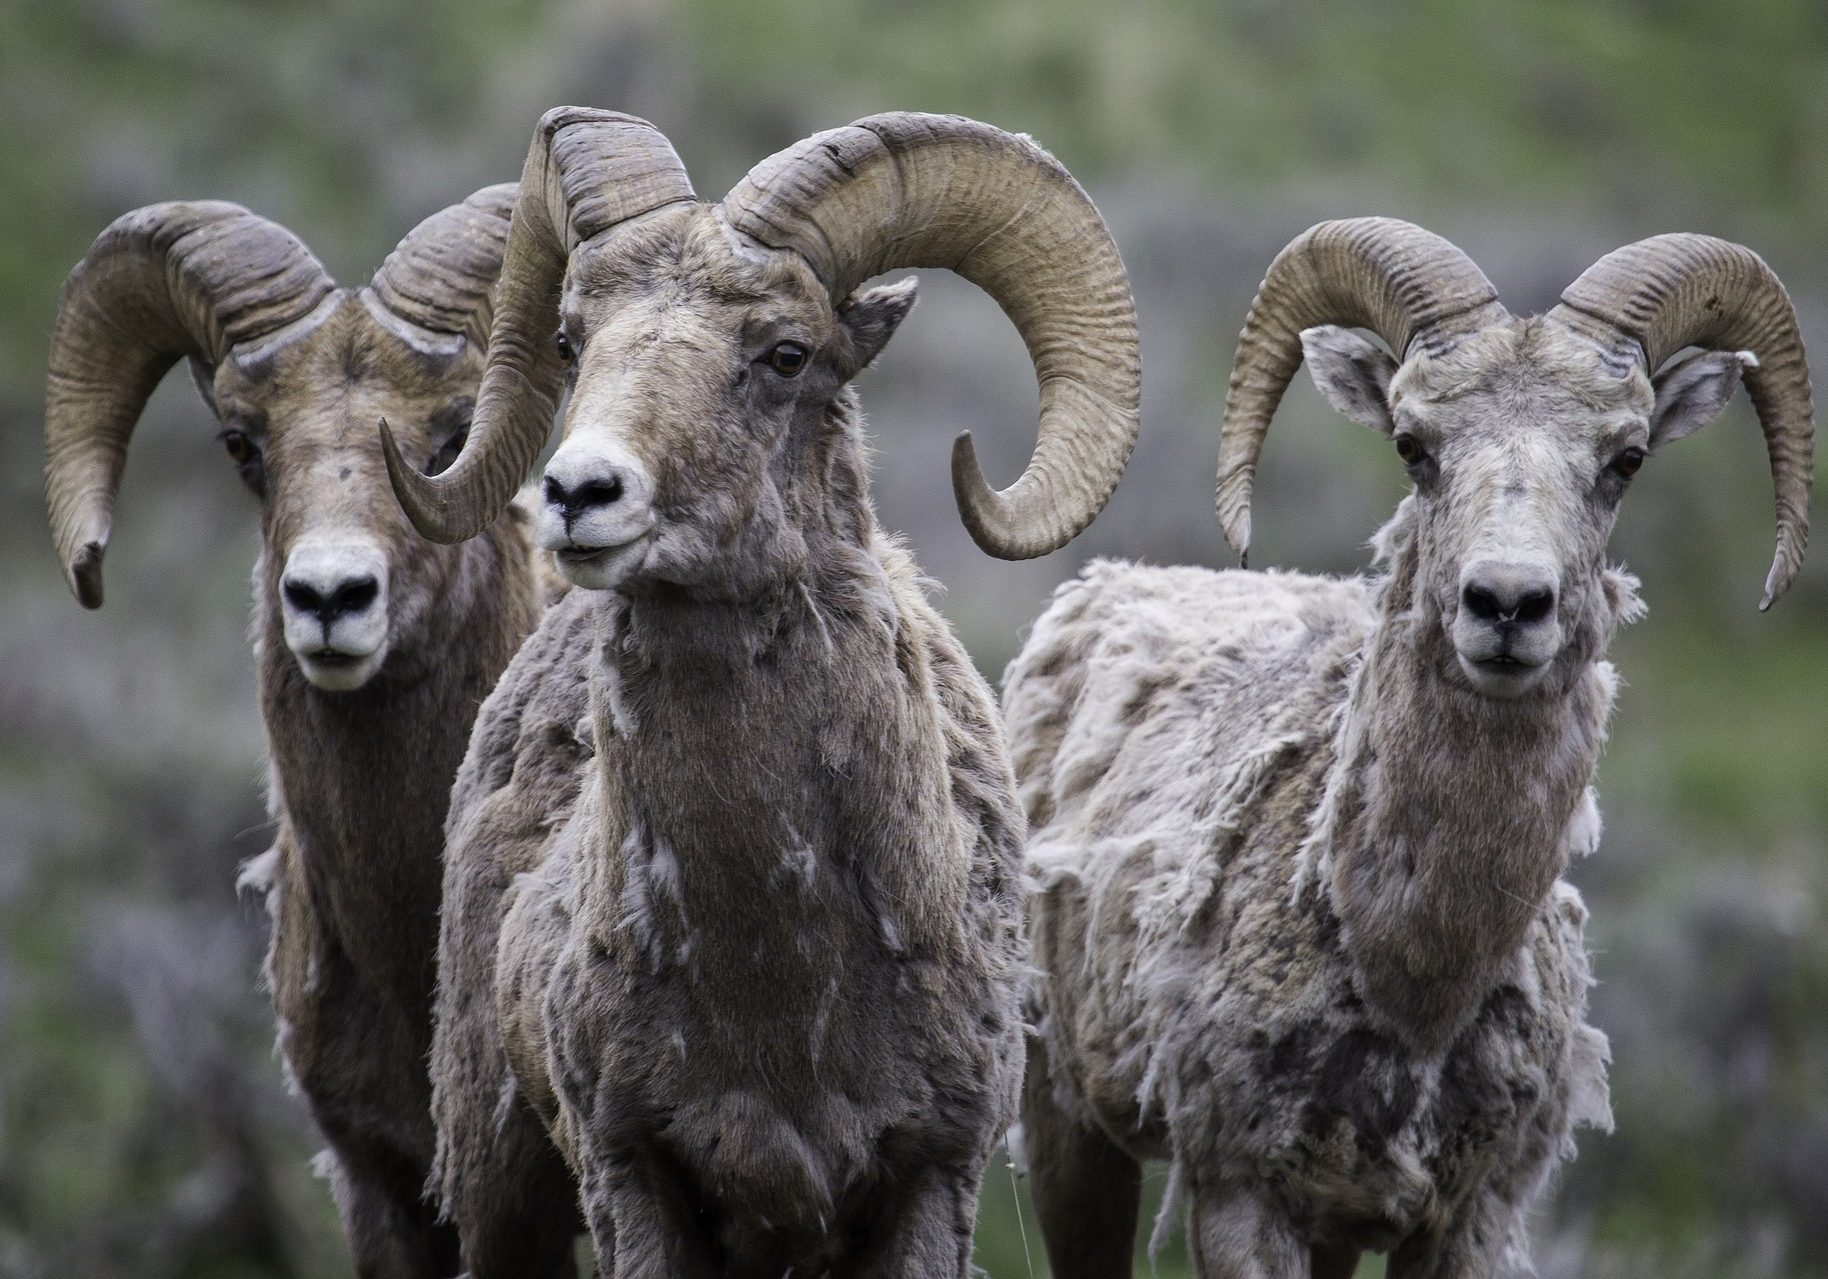 Bighorn sheep rams. (Photo credit: Skeeze/Pixabay Creative Commons)